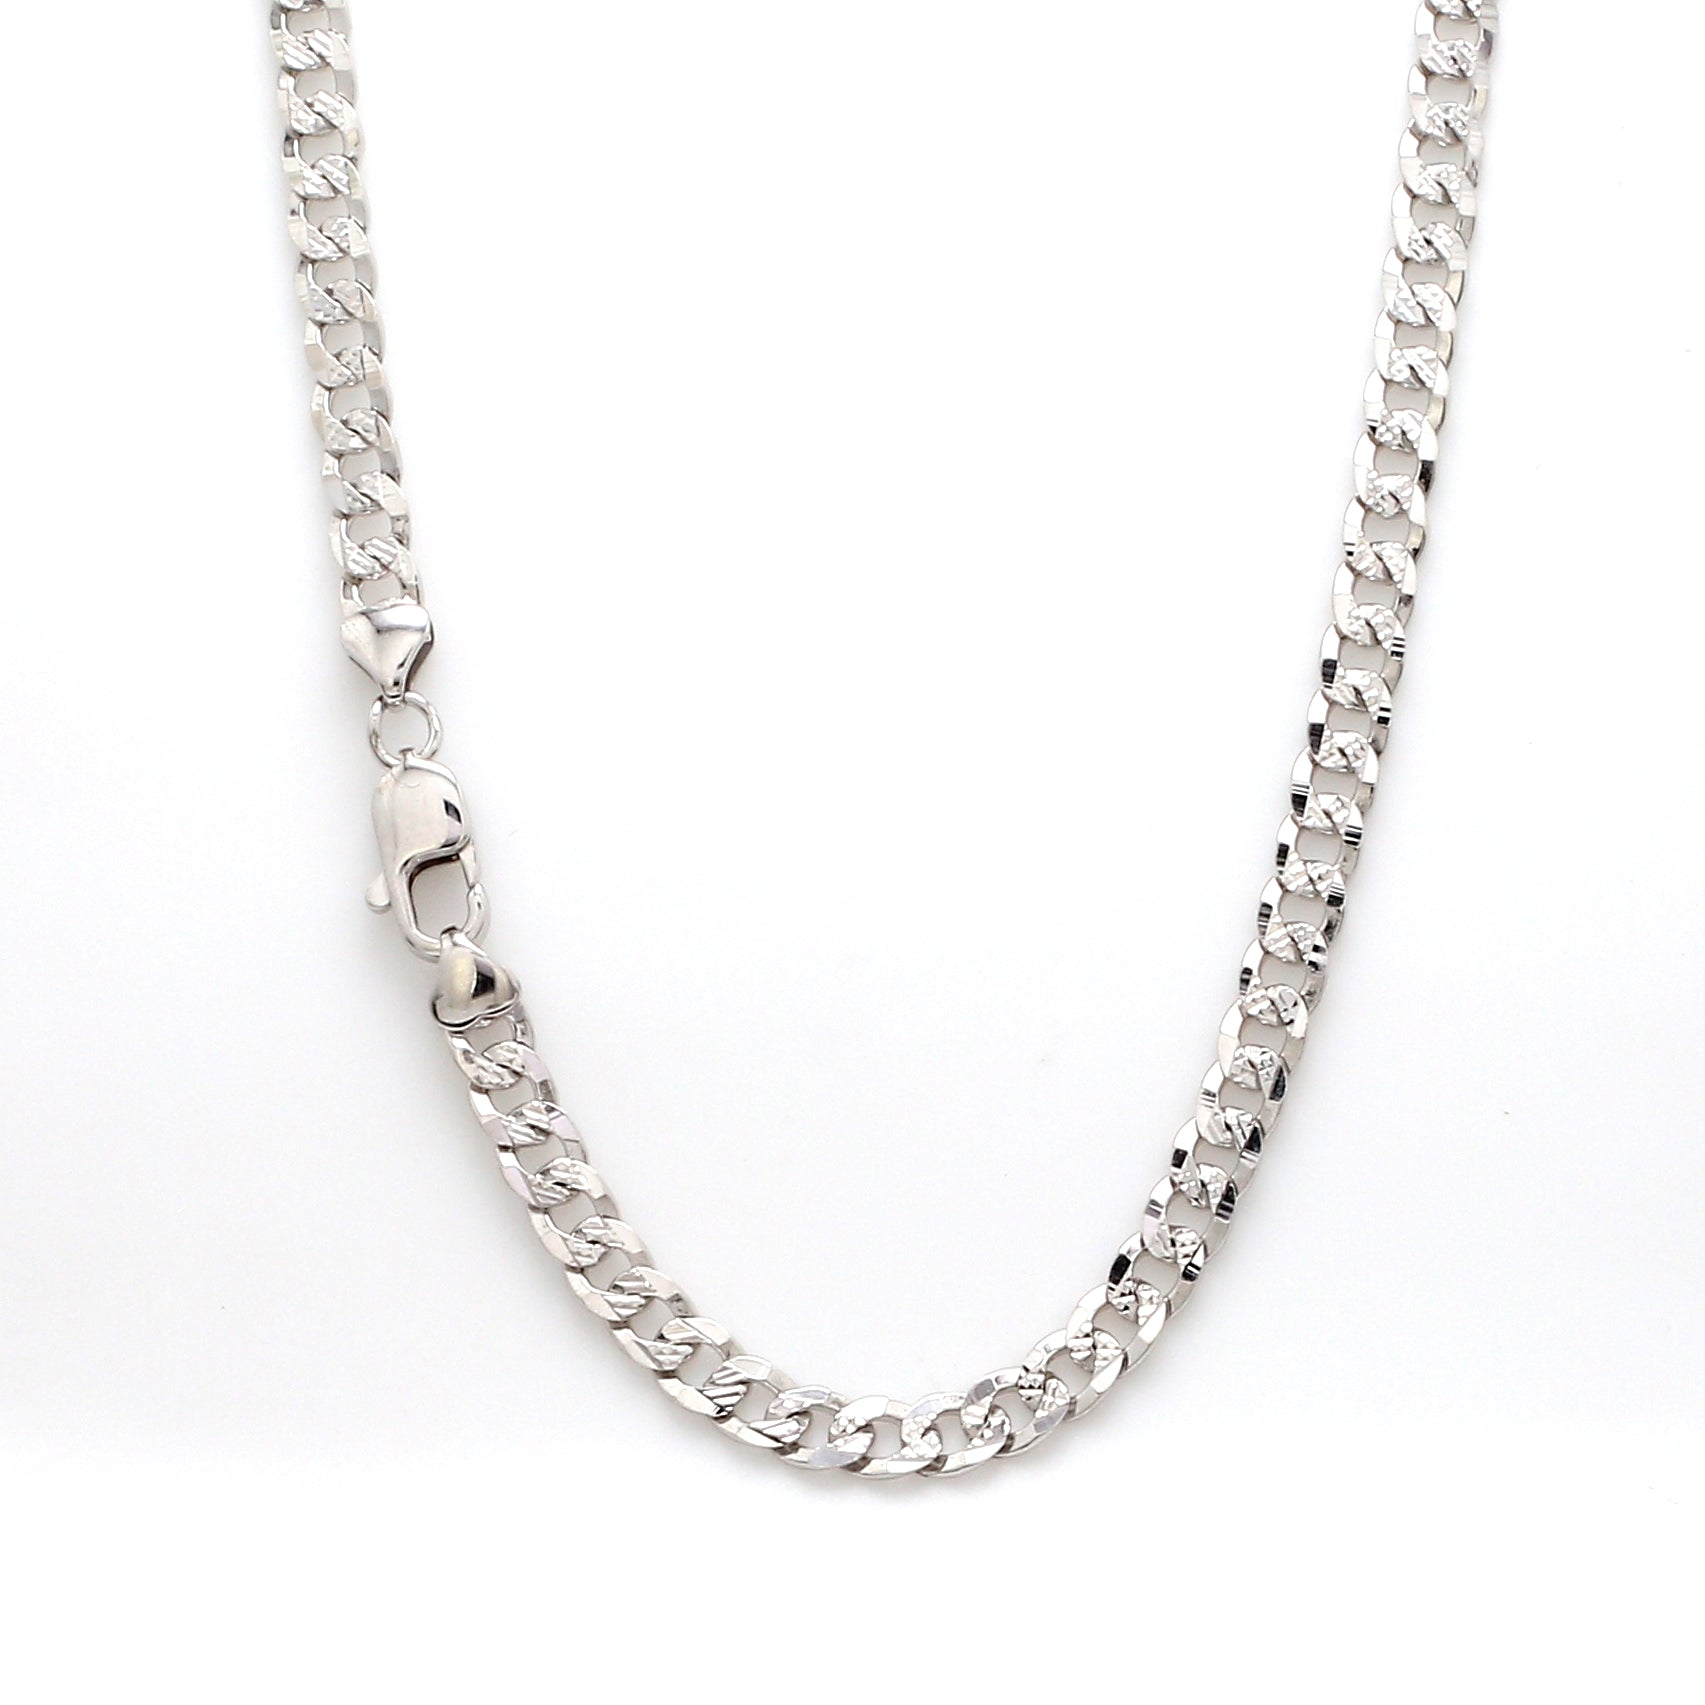 Unique Japanese Platinum Chain for Men JL PT CH 968